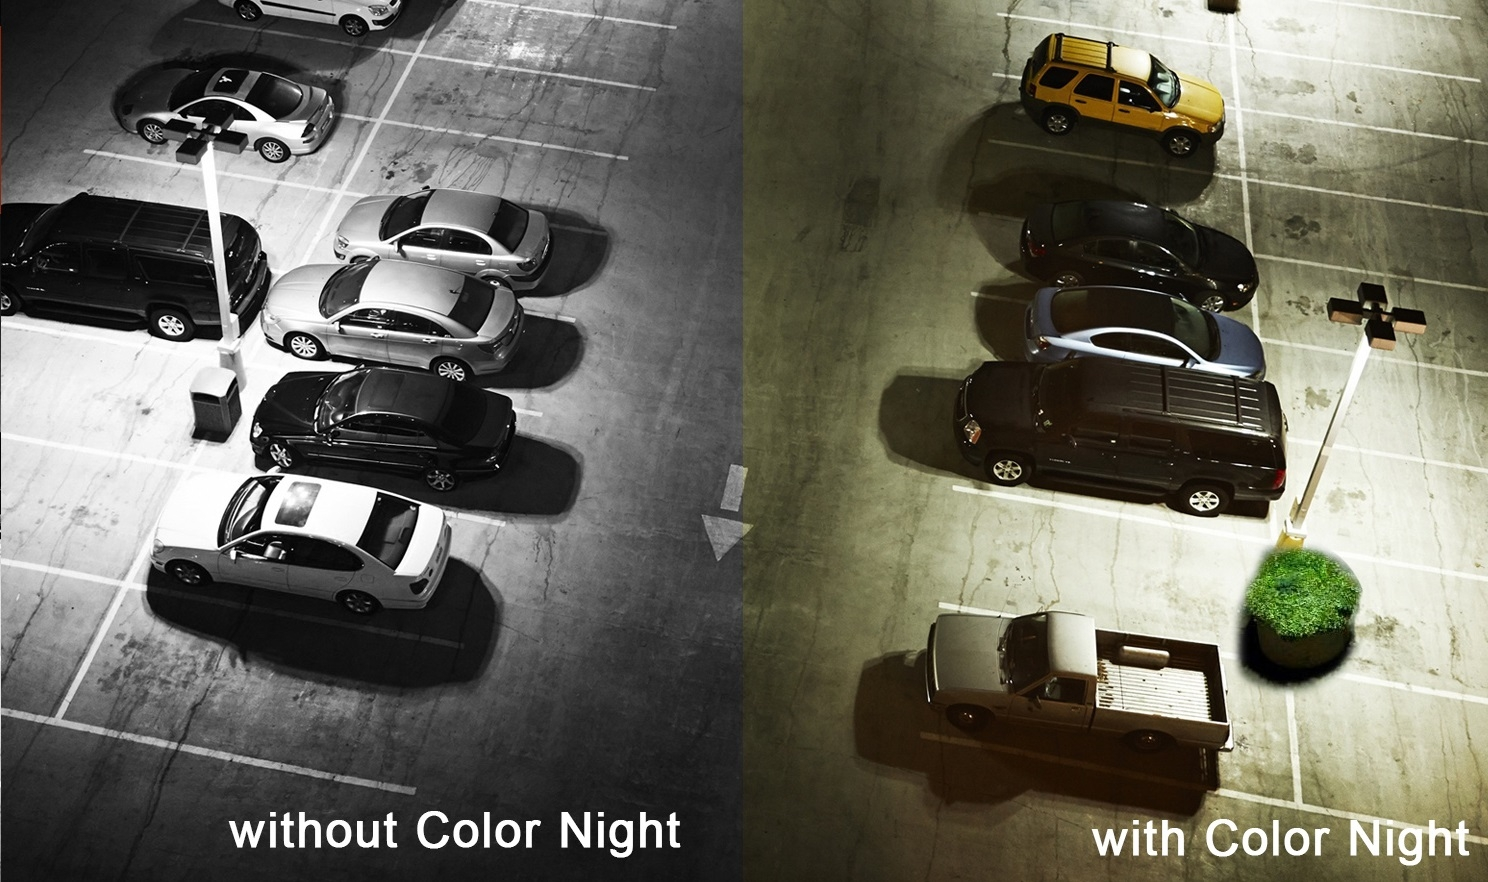 Color Night Vision Example